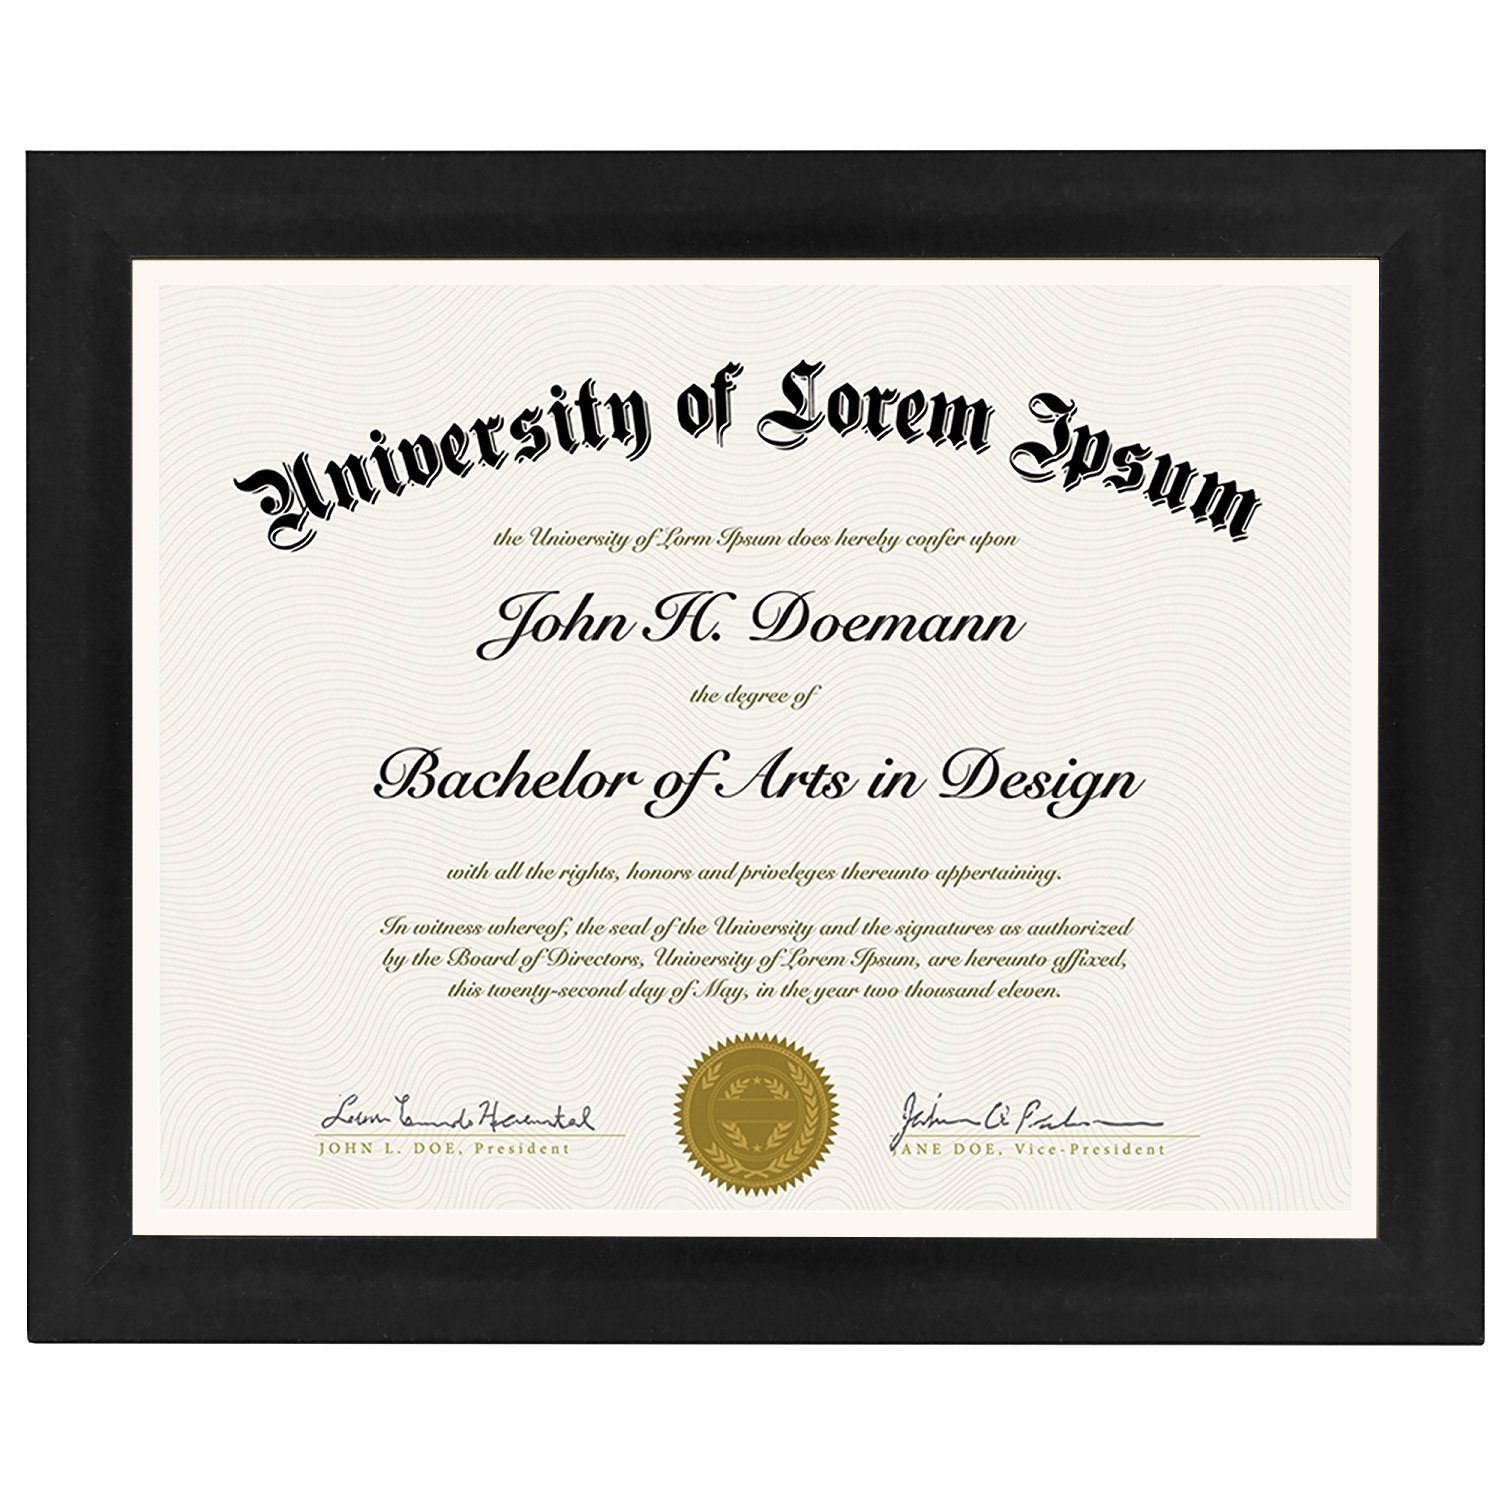 Americanflat Document Frame - Made to Display Certificates, 8.5x11, Black by Americanflat